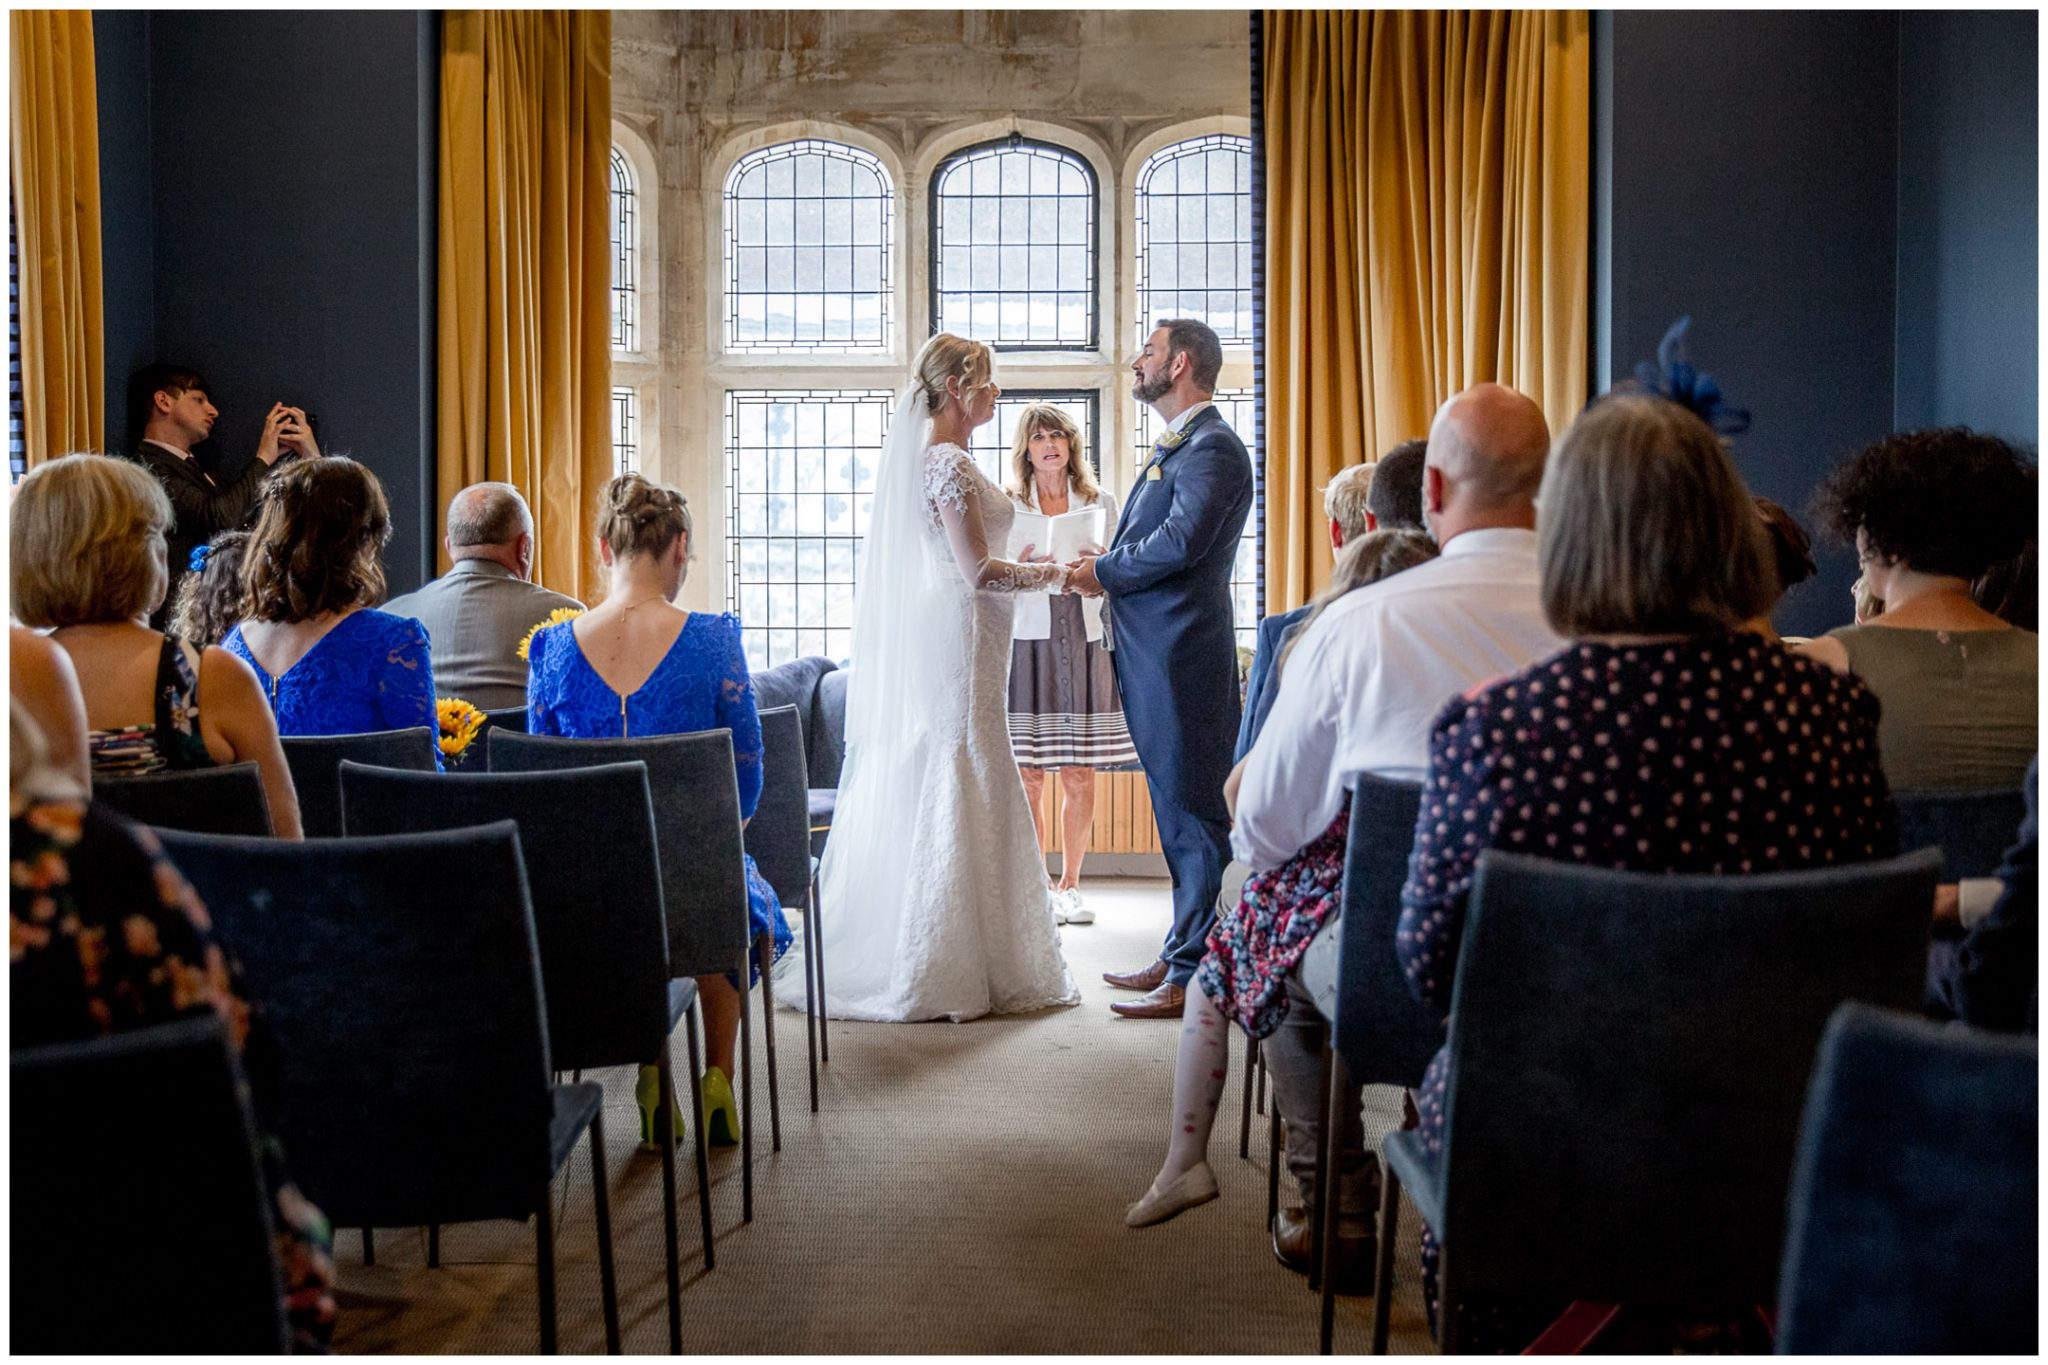 The couple turn to face each other to make their vows in front of the window in the Castle Room at Winchester Registry Office